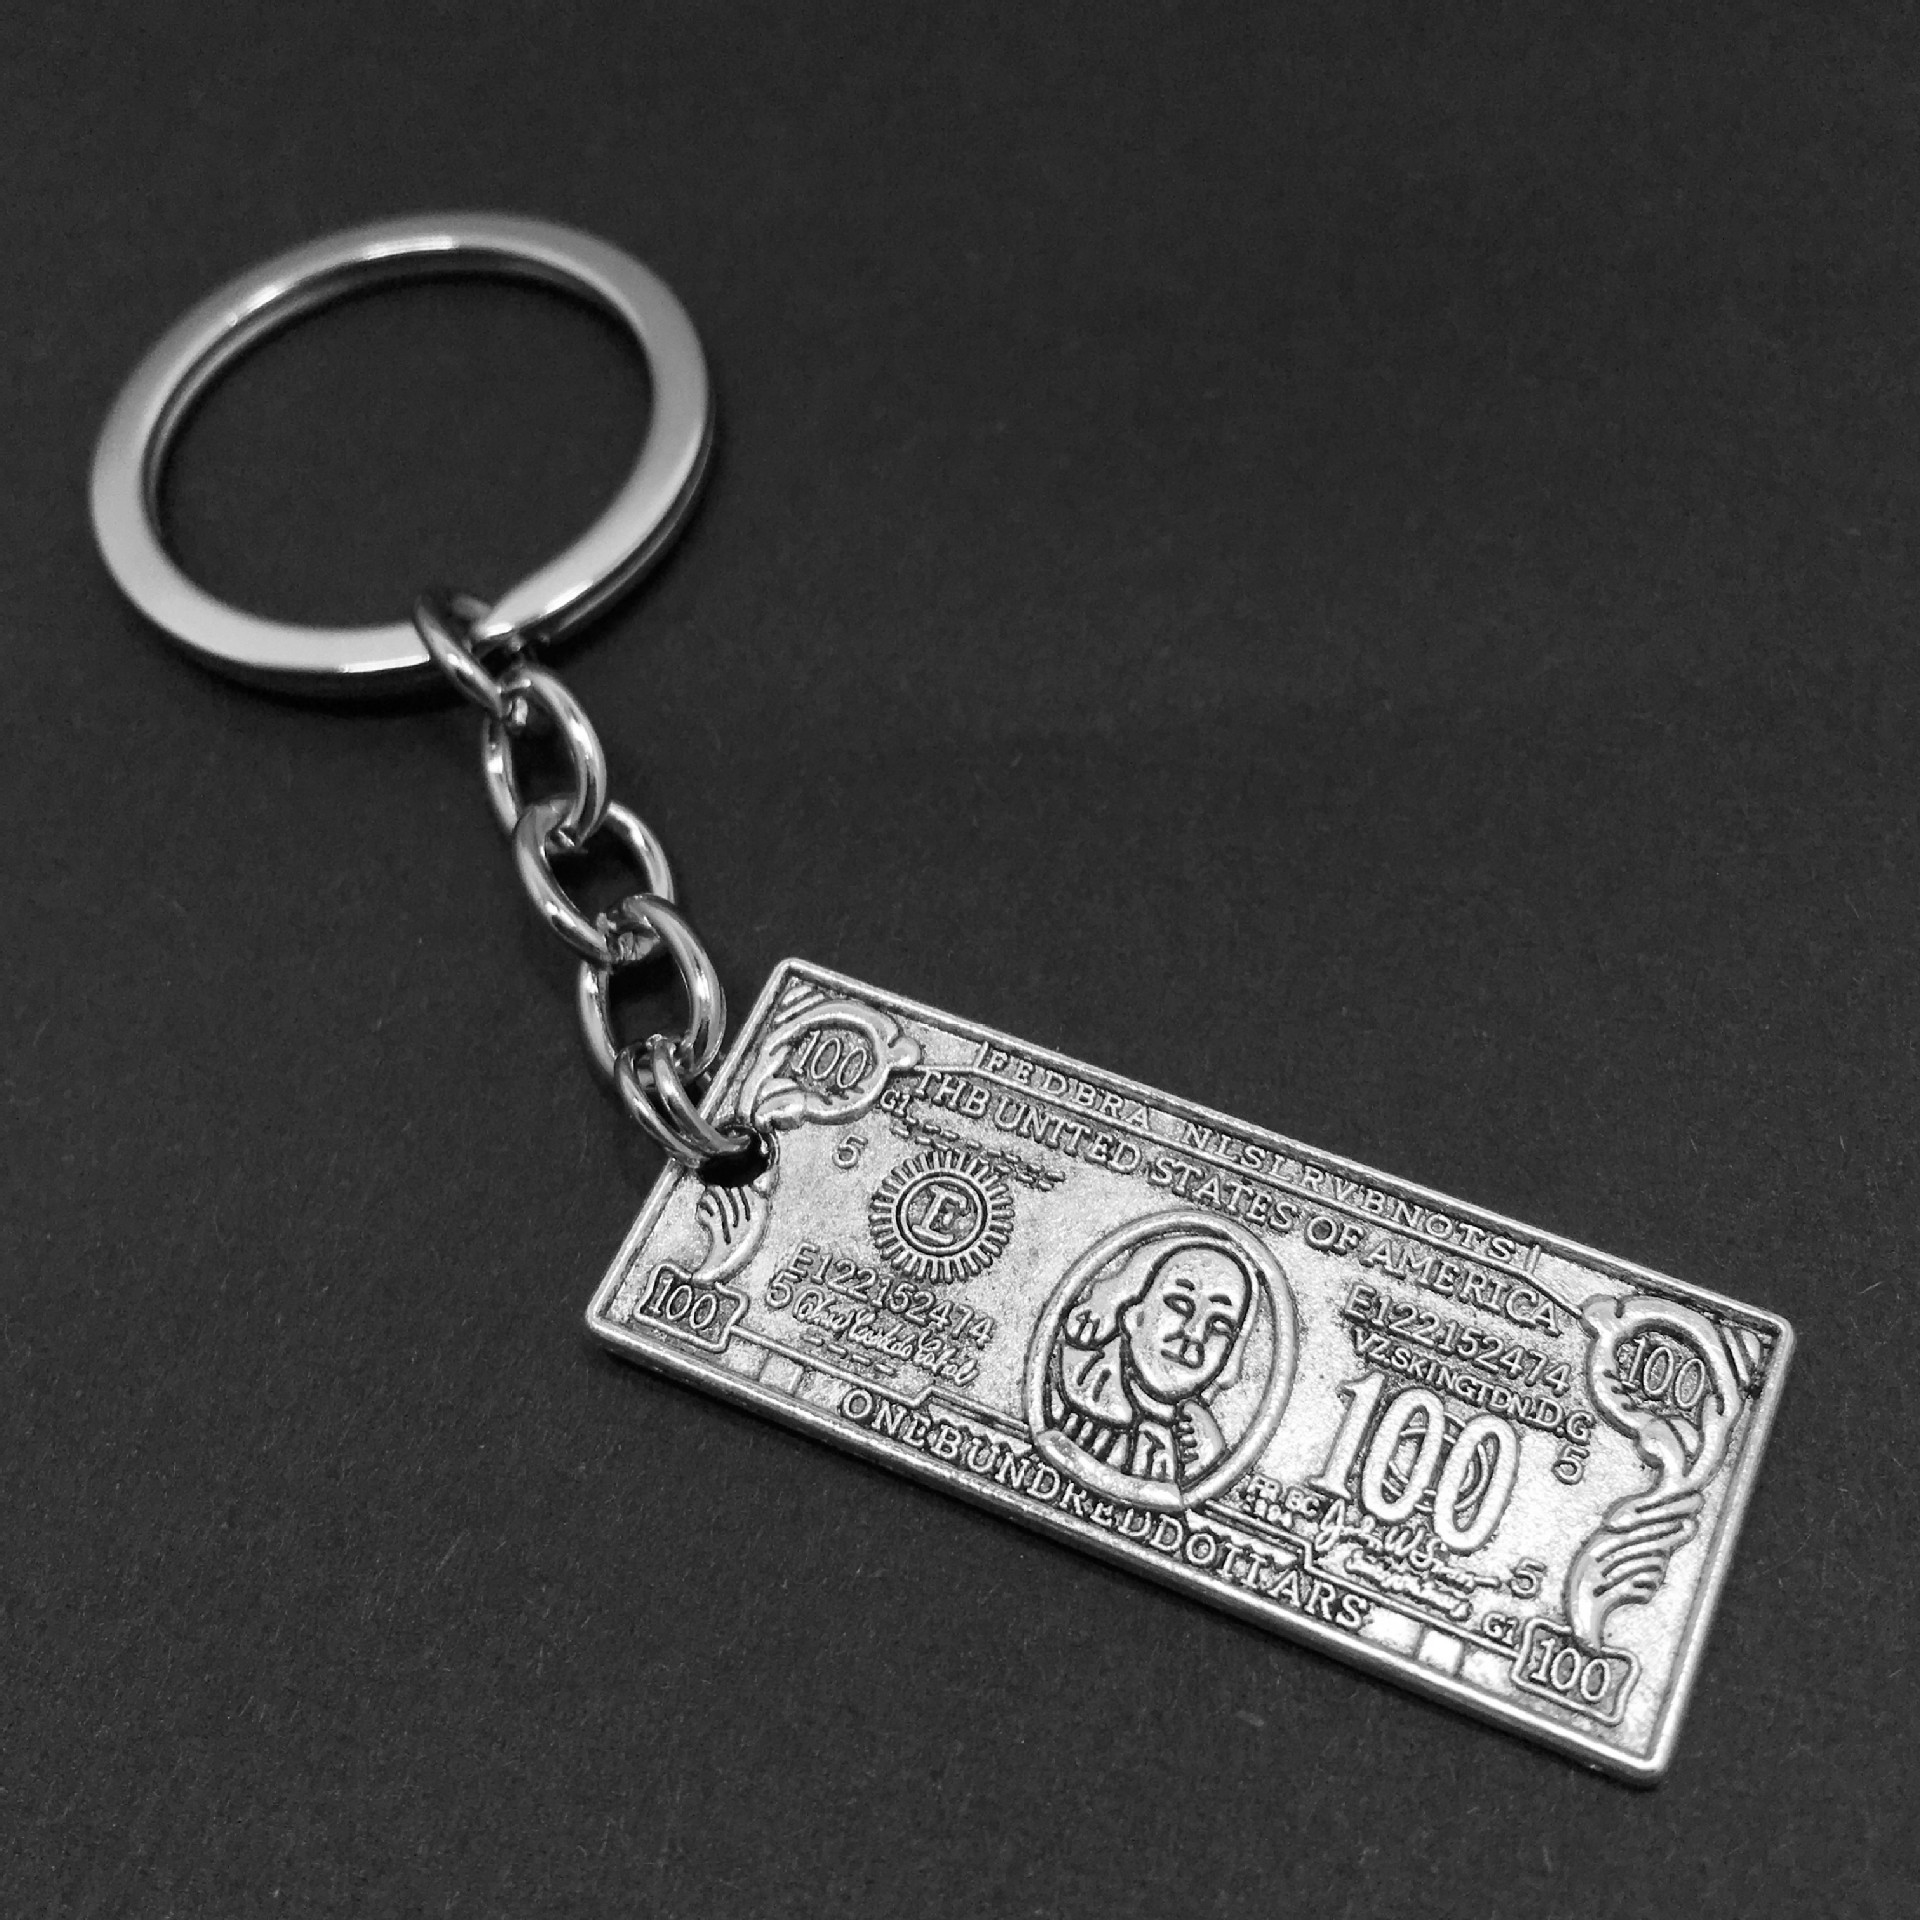 New Style Popular Ancient Silver Money Dollar Currency Modeling Alternative Creative Personality Keychain Keyring Women Men Gift